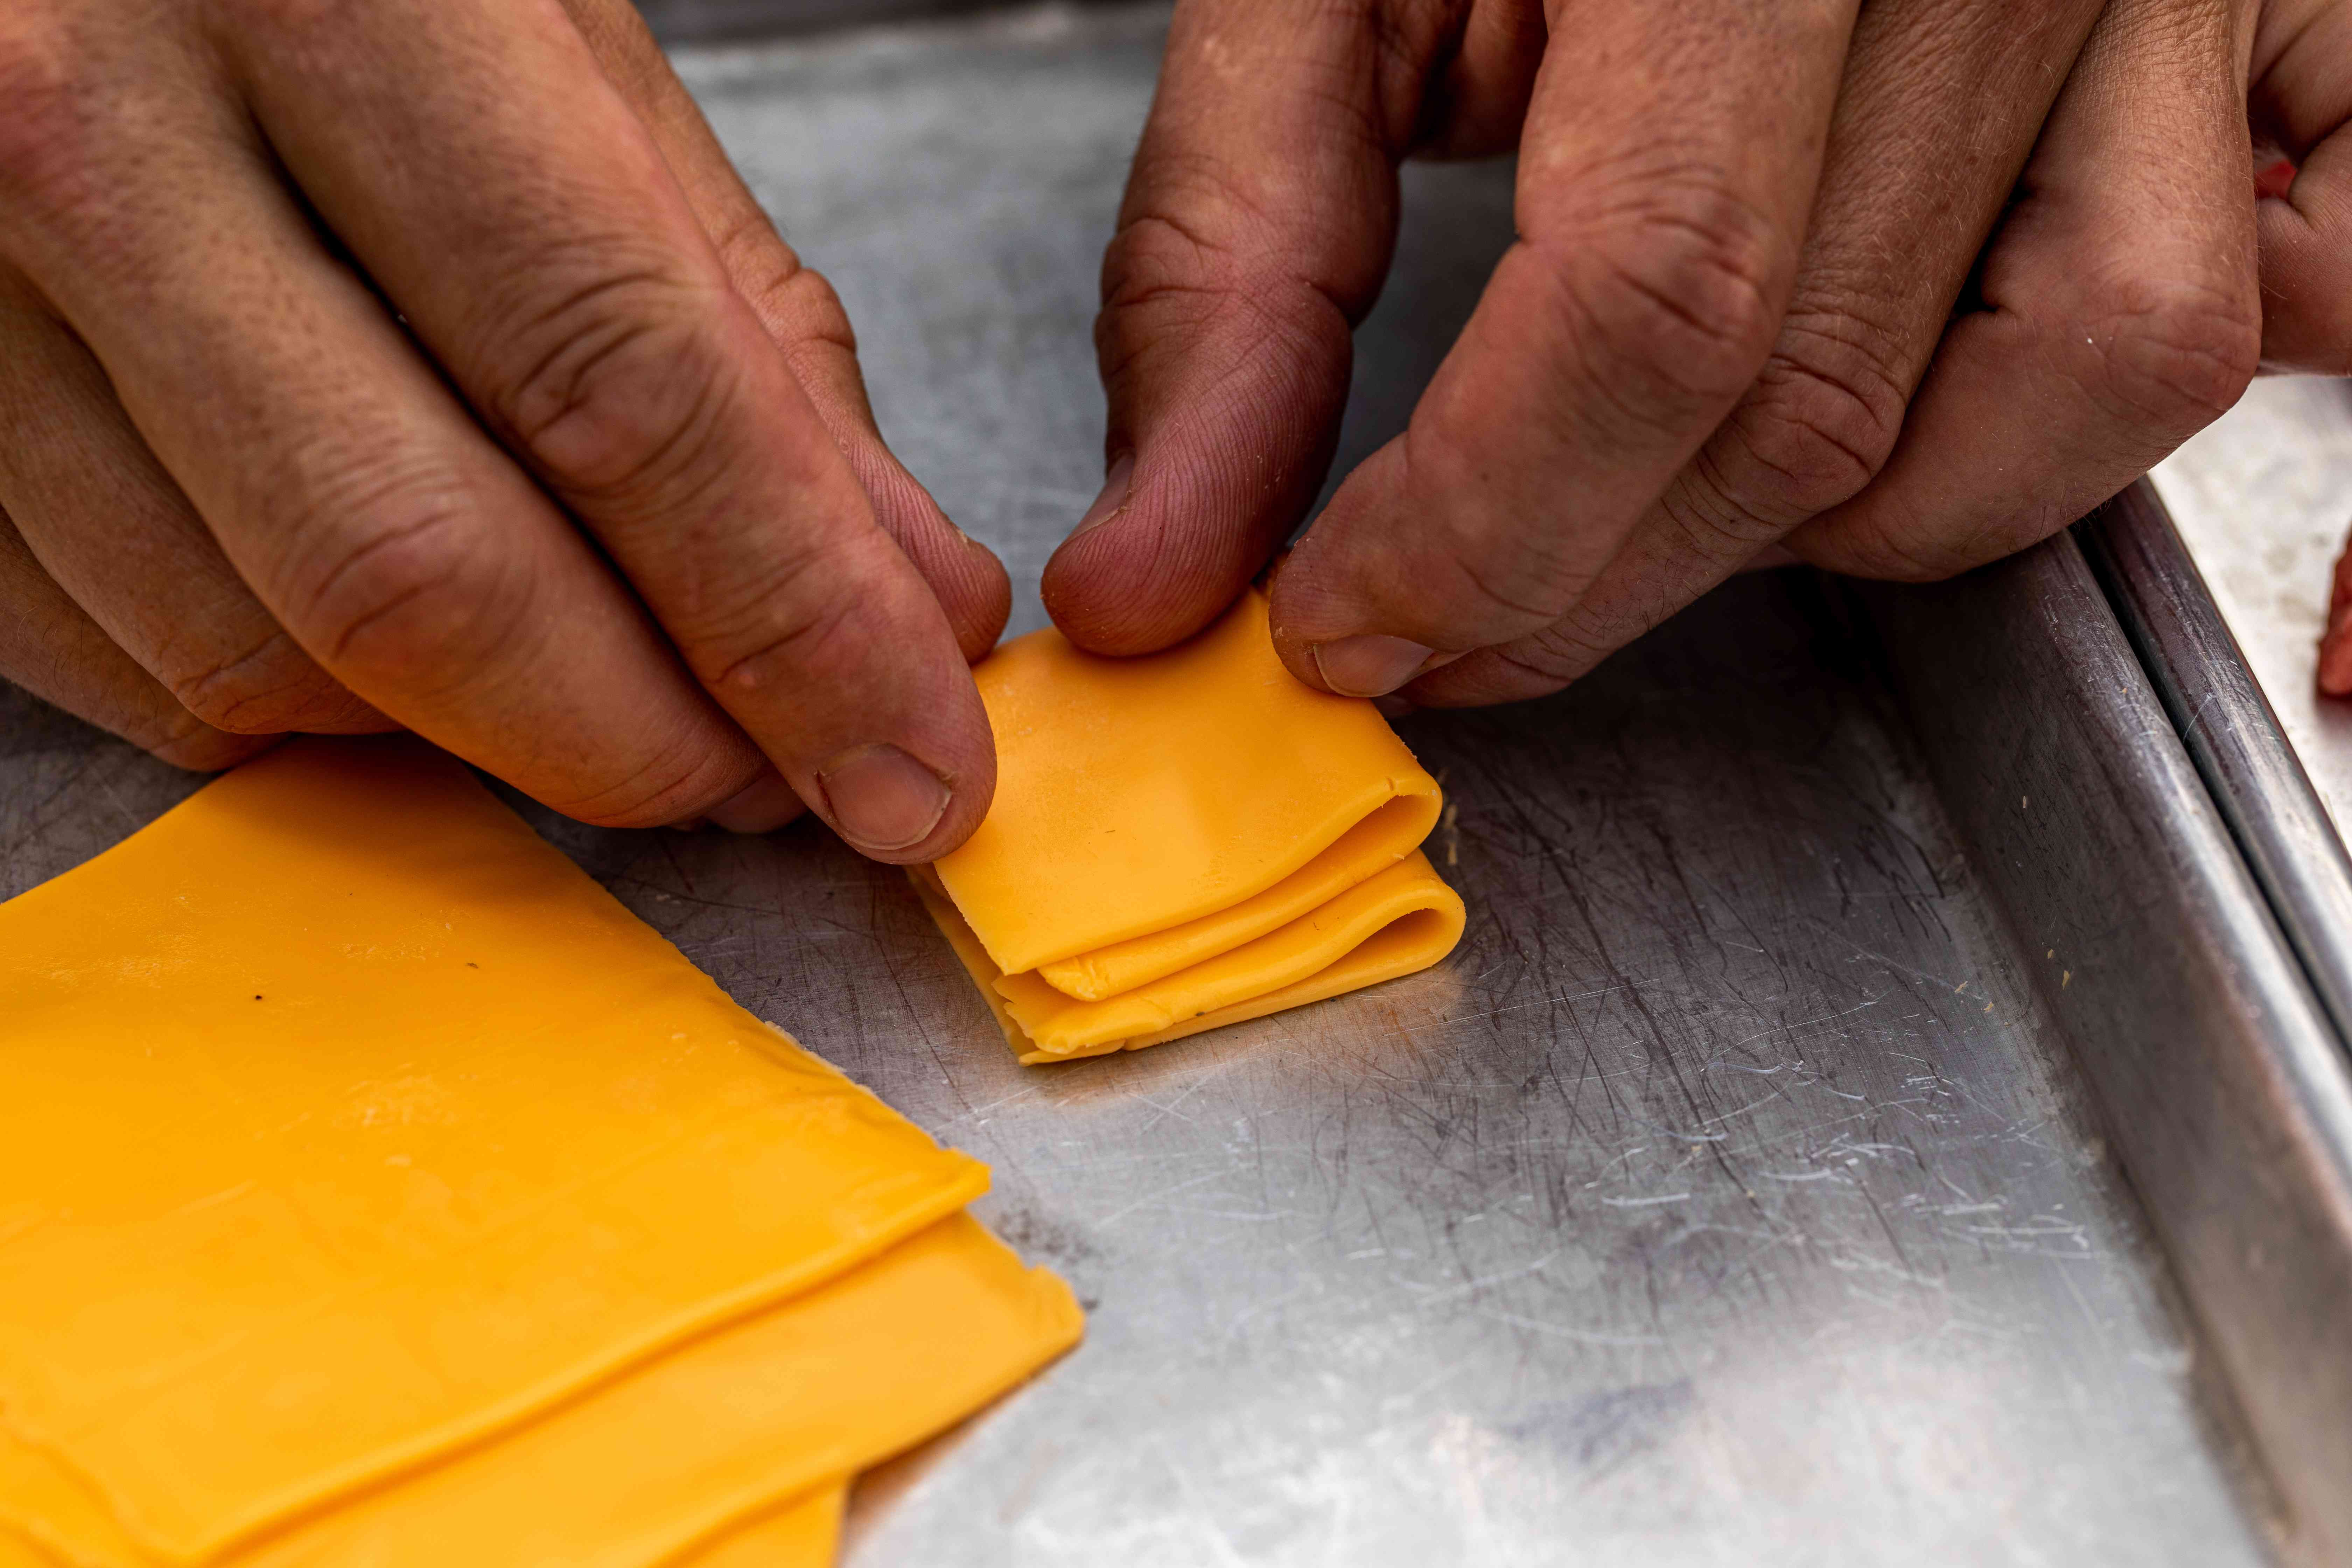 Folding sliced cheese into a square to show how to make a Jucy Lucy burger